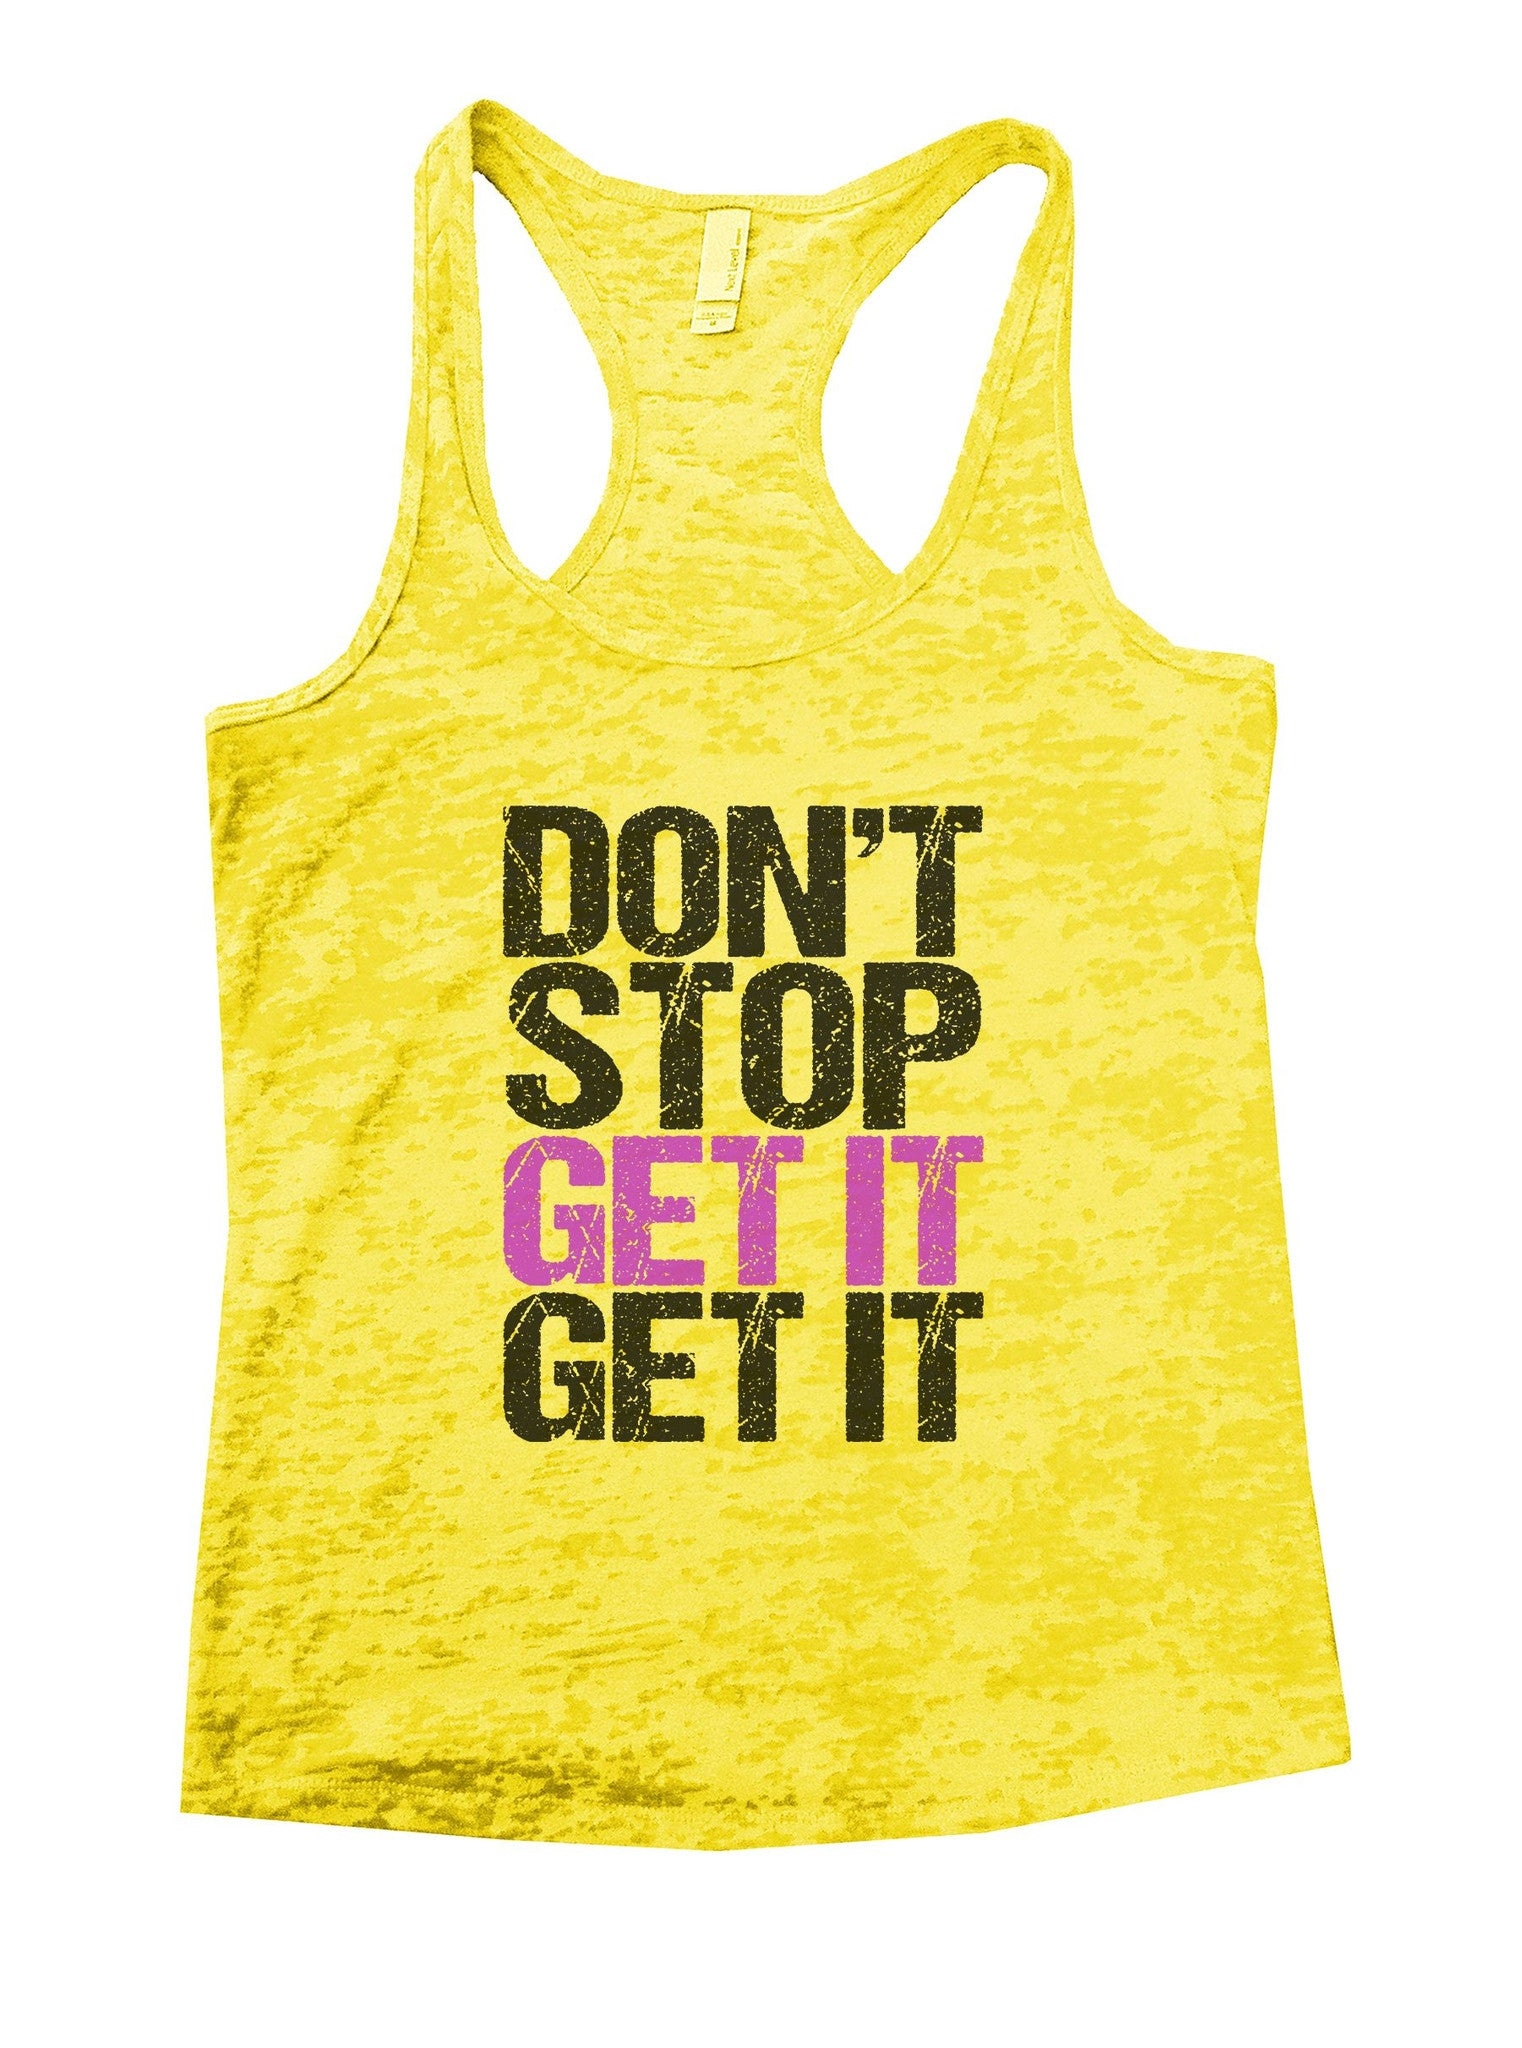 Don't Stop Get It Get It Burnout Tank Top By BurnoutTankTops.com - 1105 - Funny Shirts Tank Tops Burnouts and Triblends  - 7